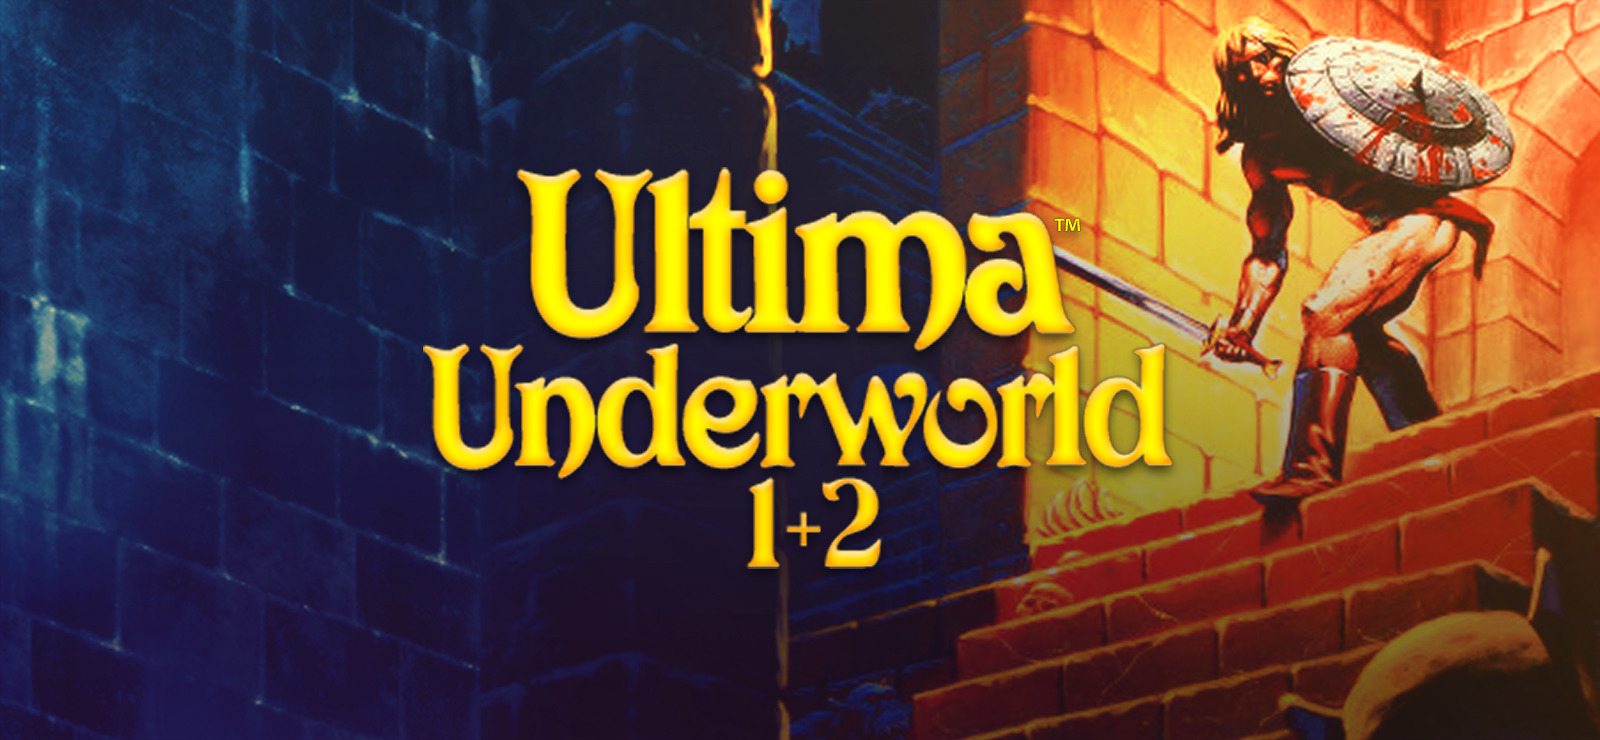 artwork for Ultima Underworld 1+2: a shirtless barbarian with sword and shield peers down a staircase into a dungeon below